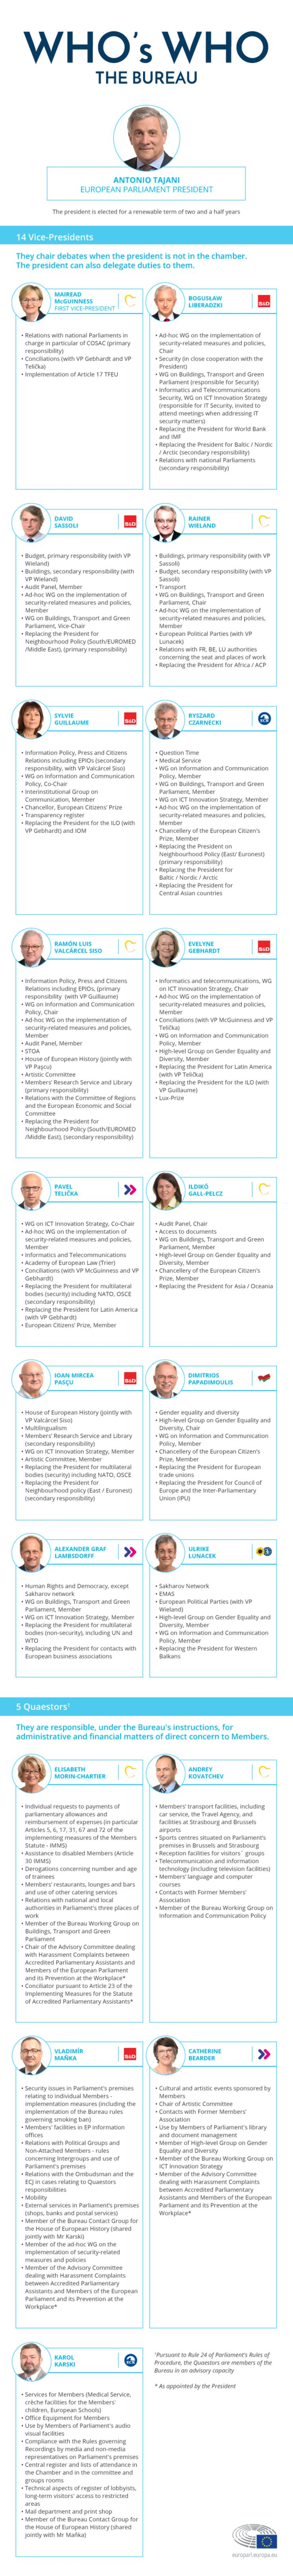 Discover the European Parliament's bureau responsible for running the institution and the names and responsibilities of the vice-presidents and quaestors. (infographic)